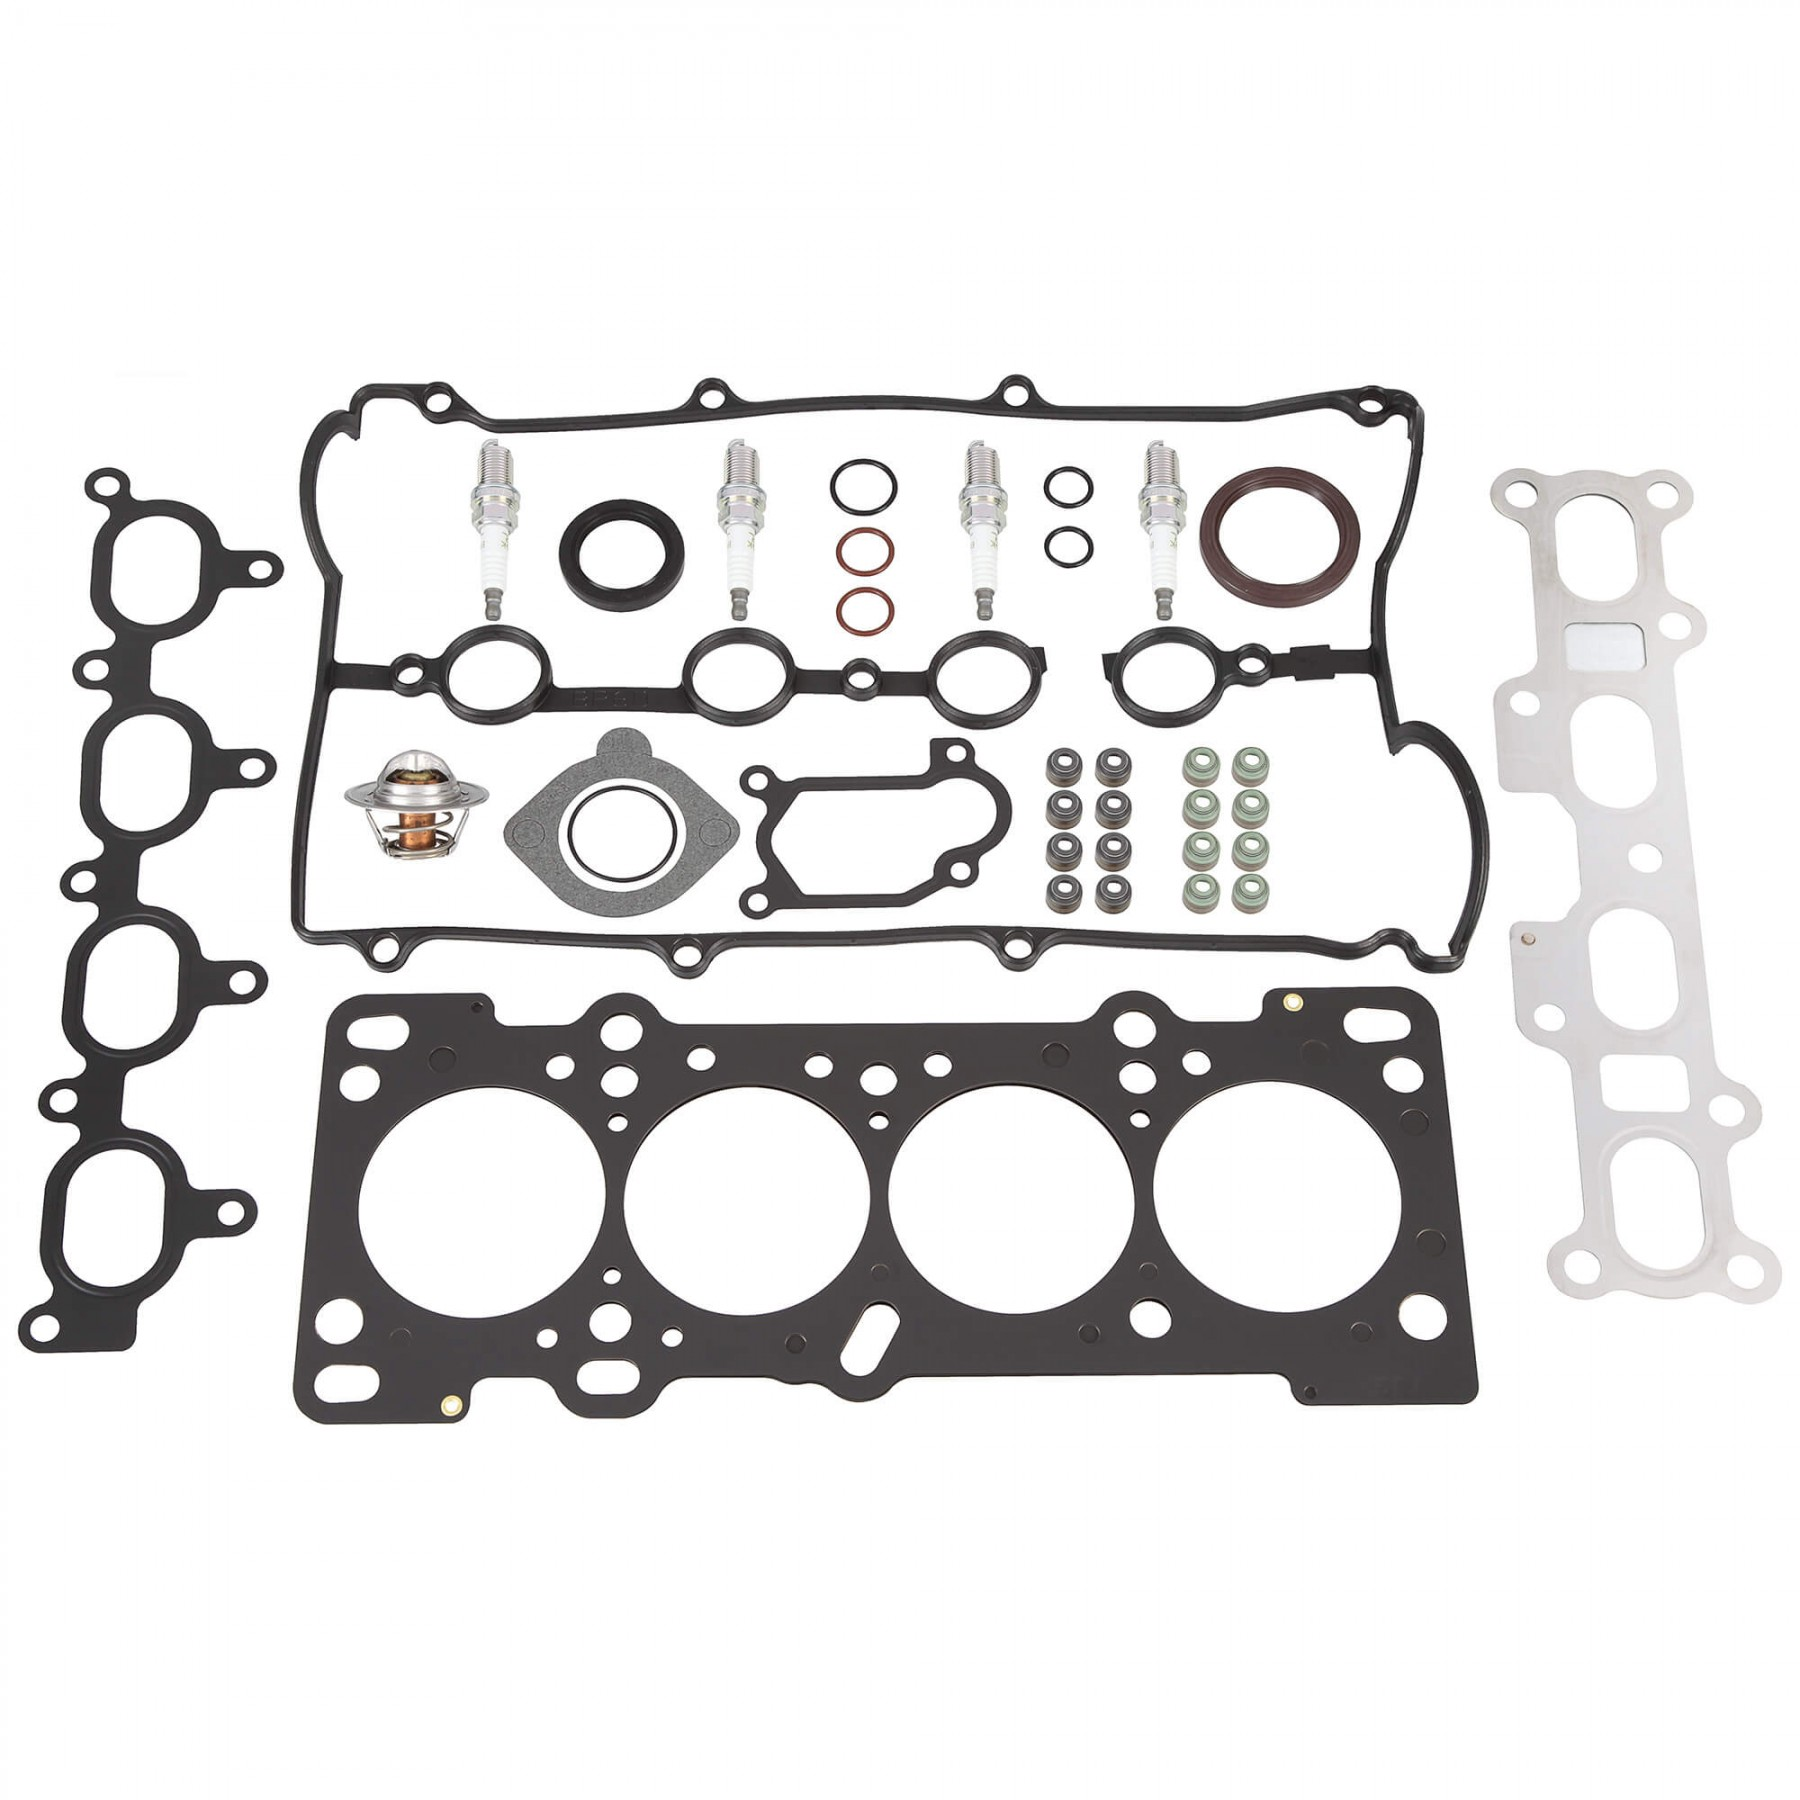 Cylinder Head Rebuild Kit